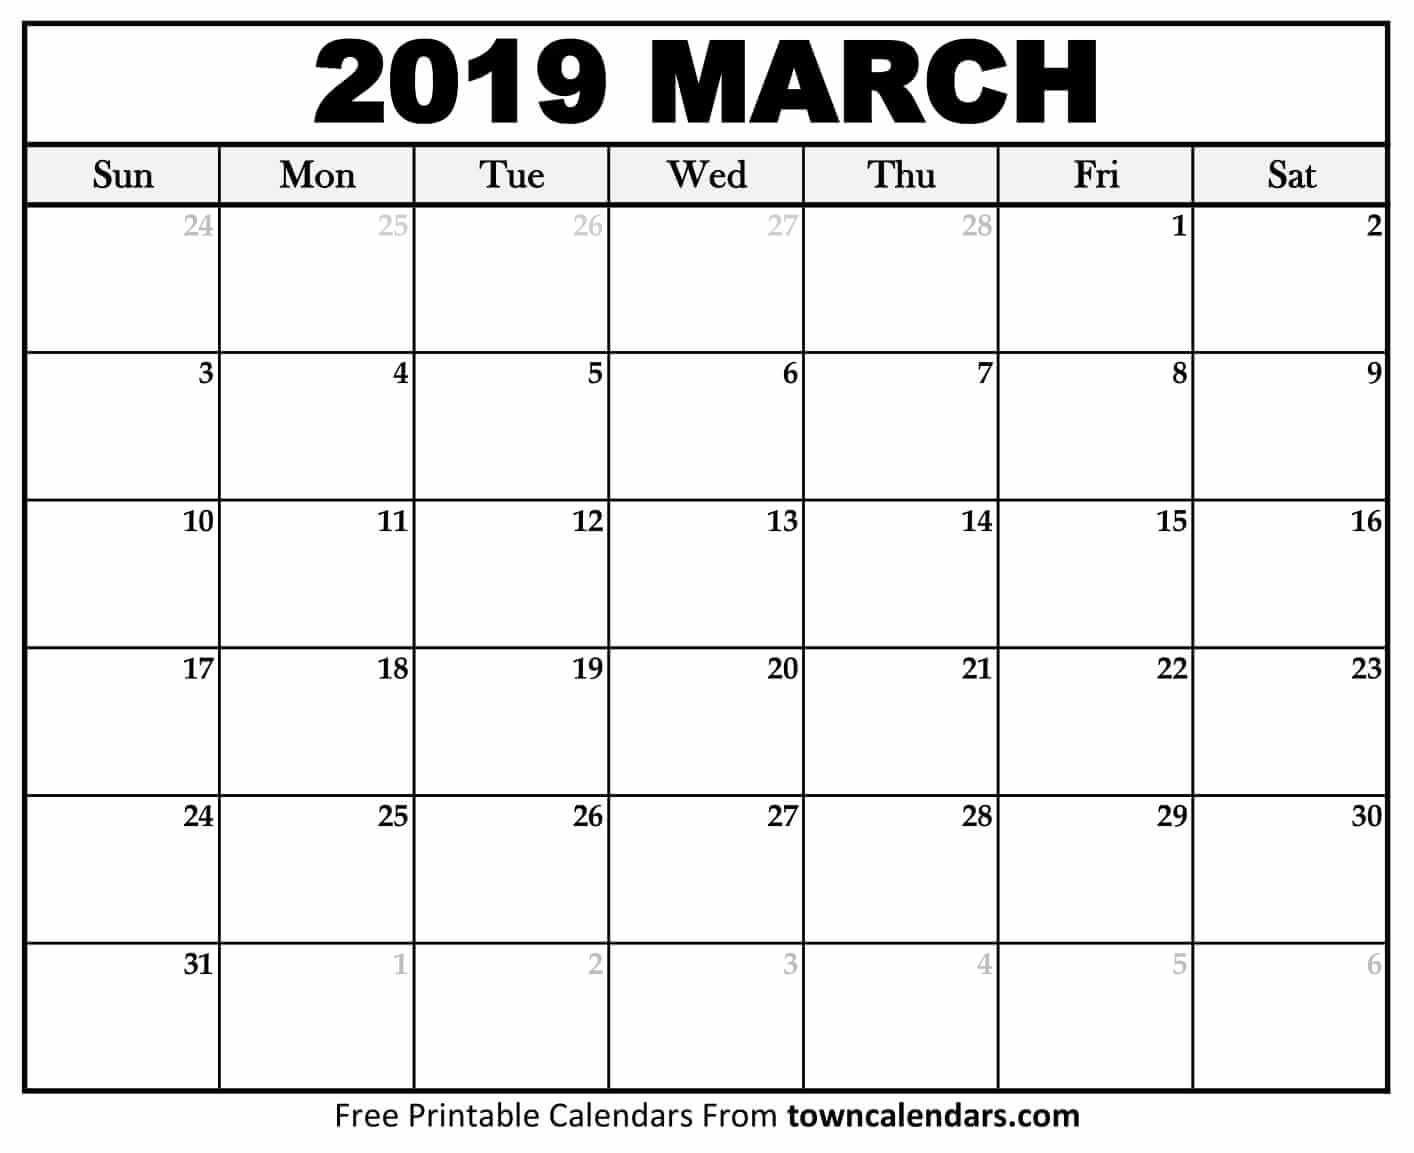 Printable March 2019 Calendar - Towncalendars Calendar 2019 March Printable